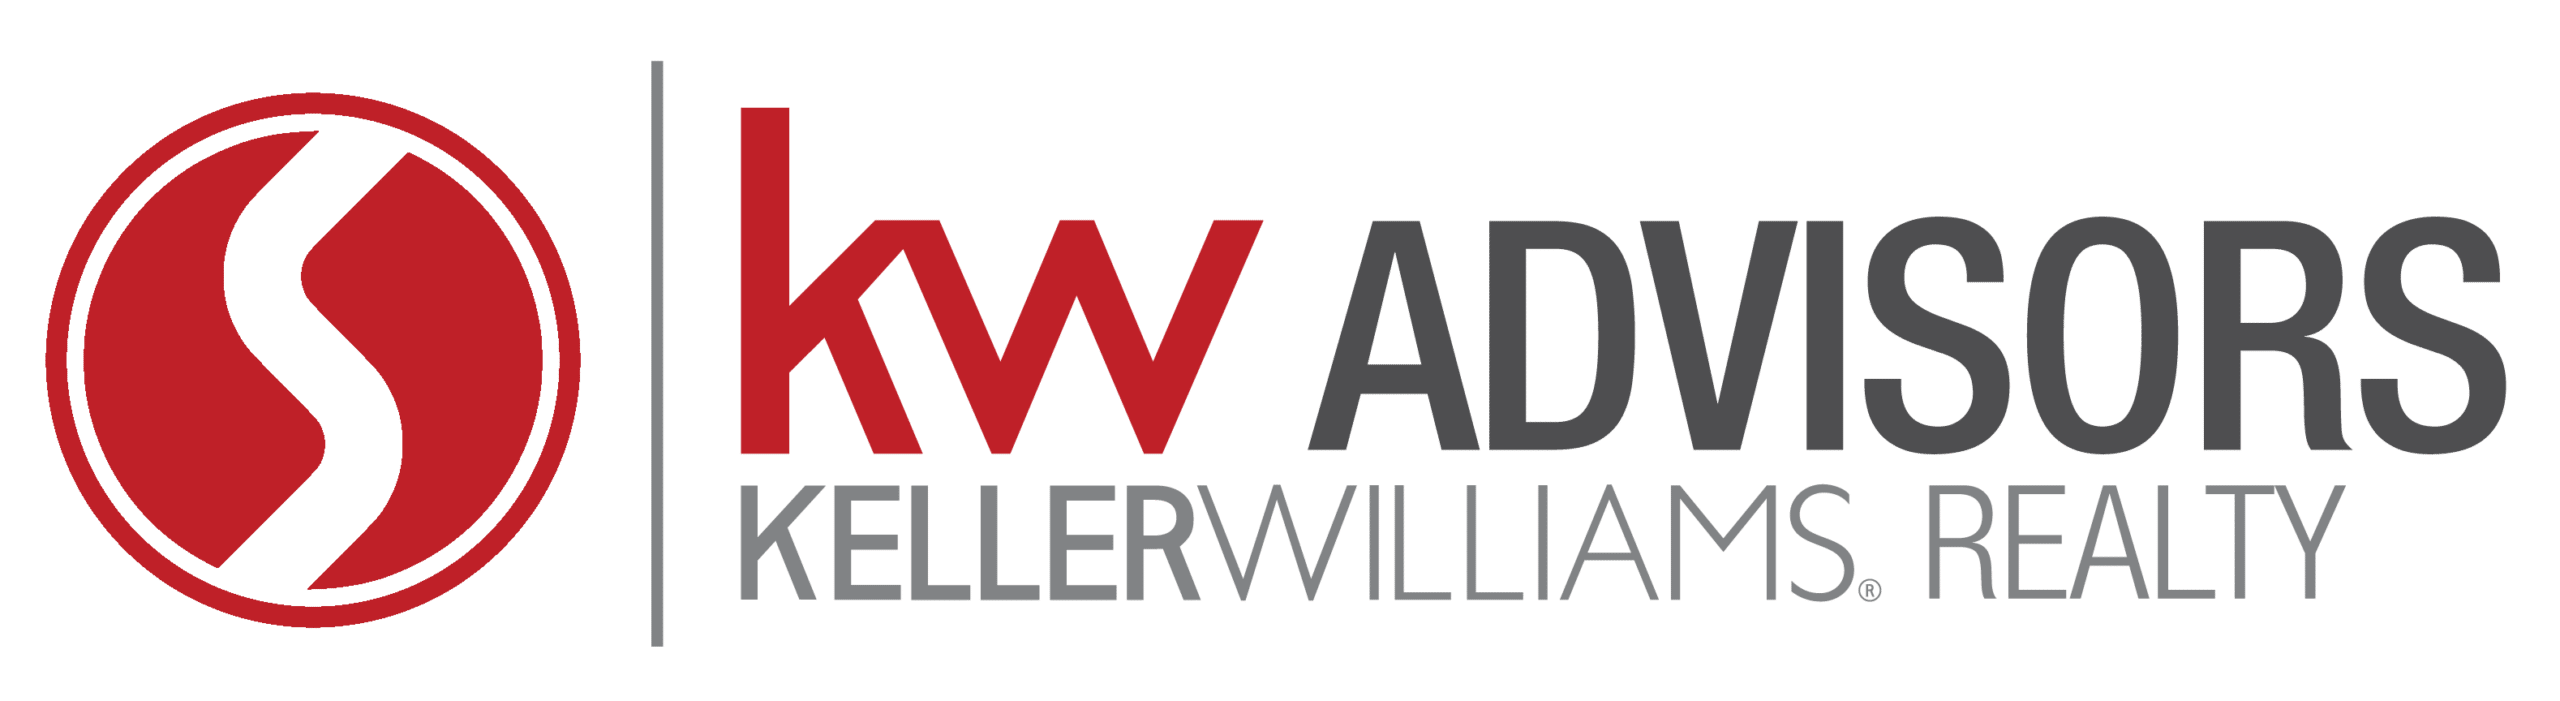 Gregg Sutter - Keller Williams Advisors